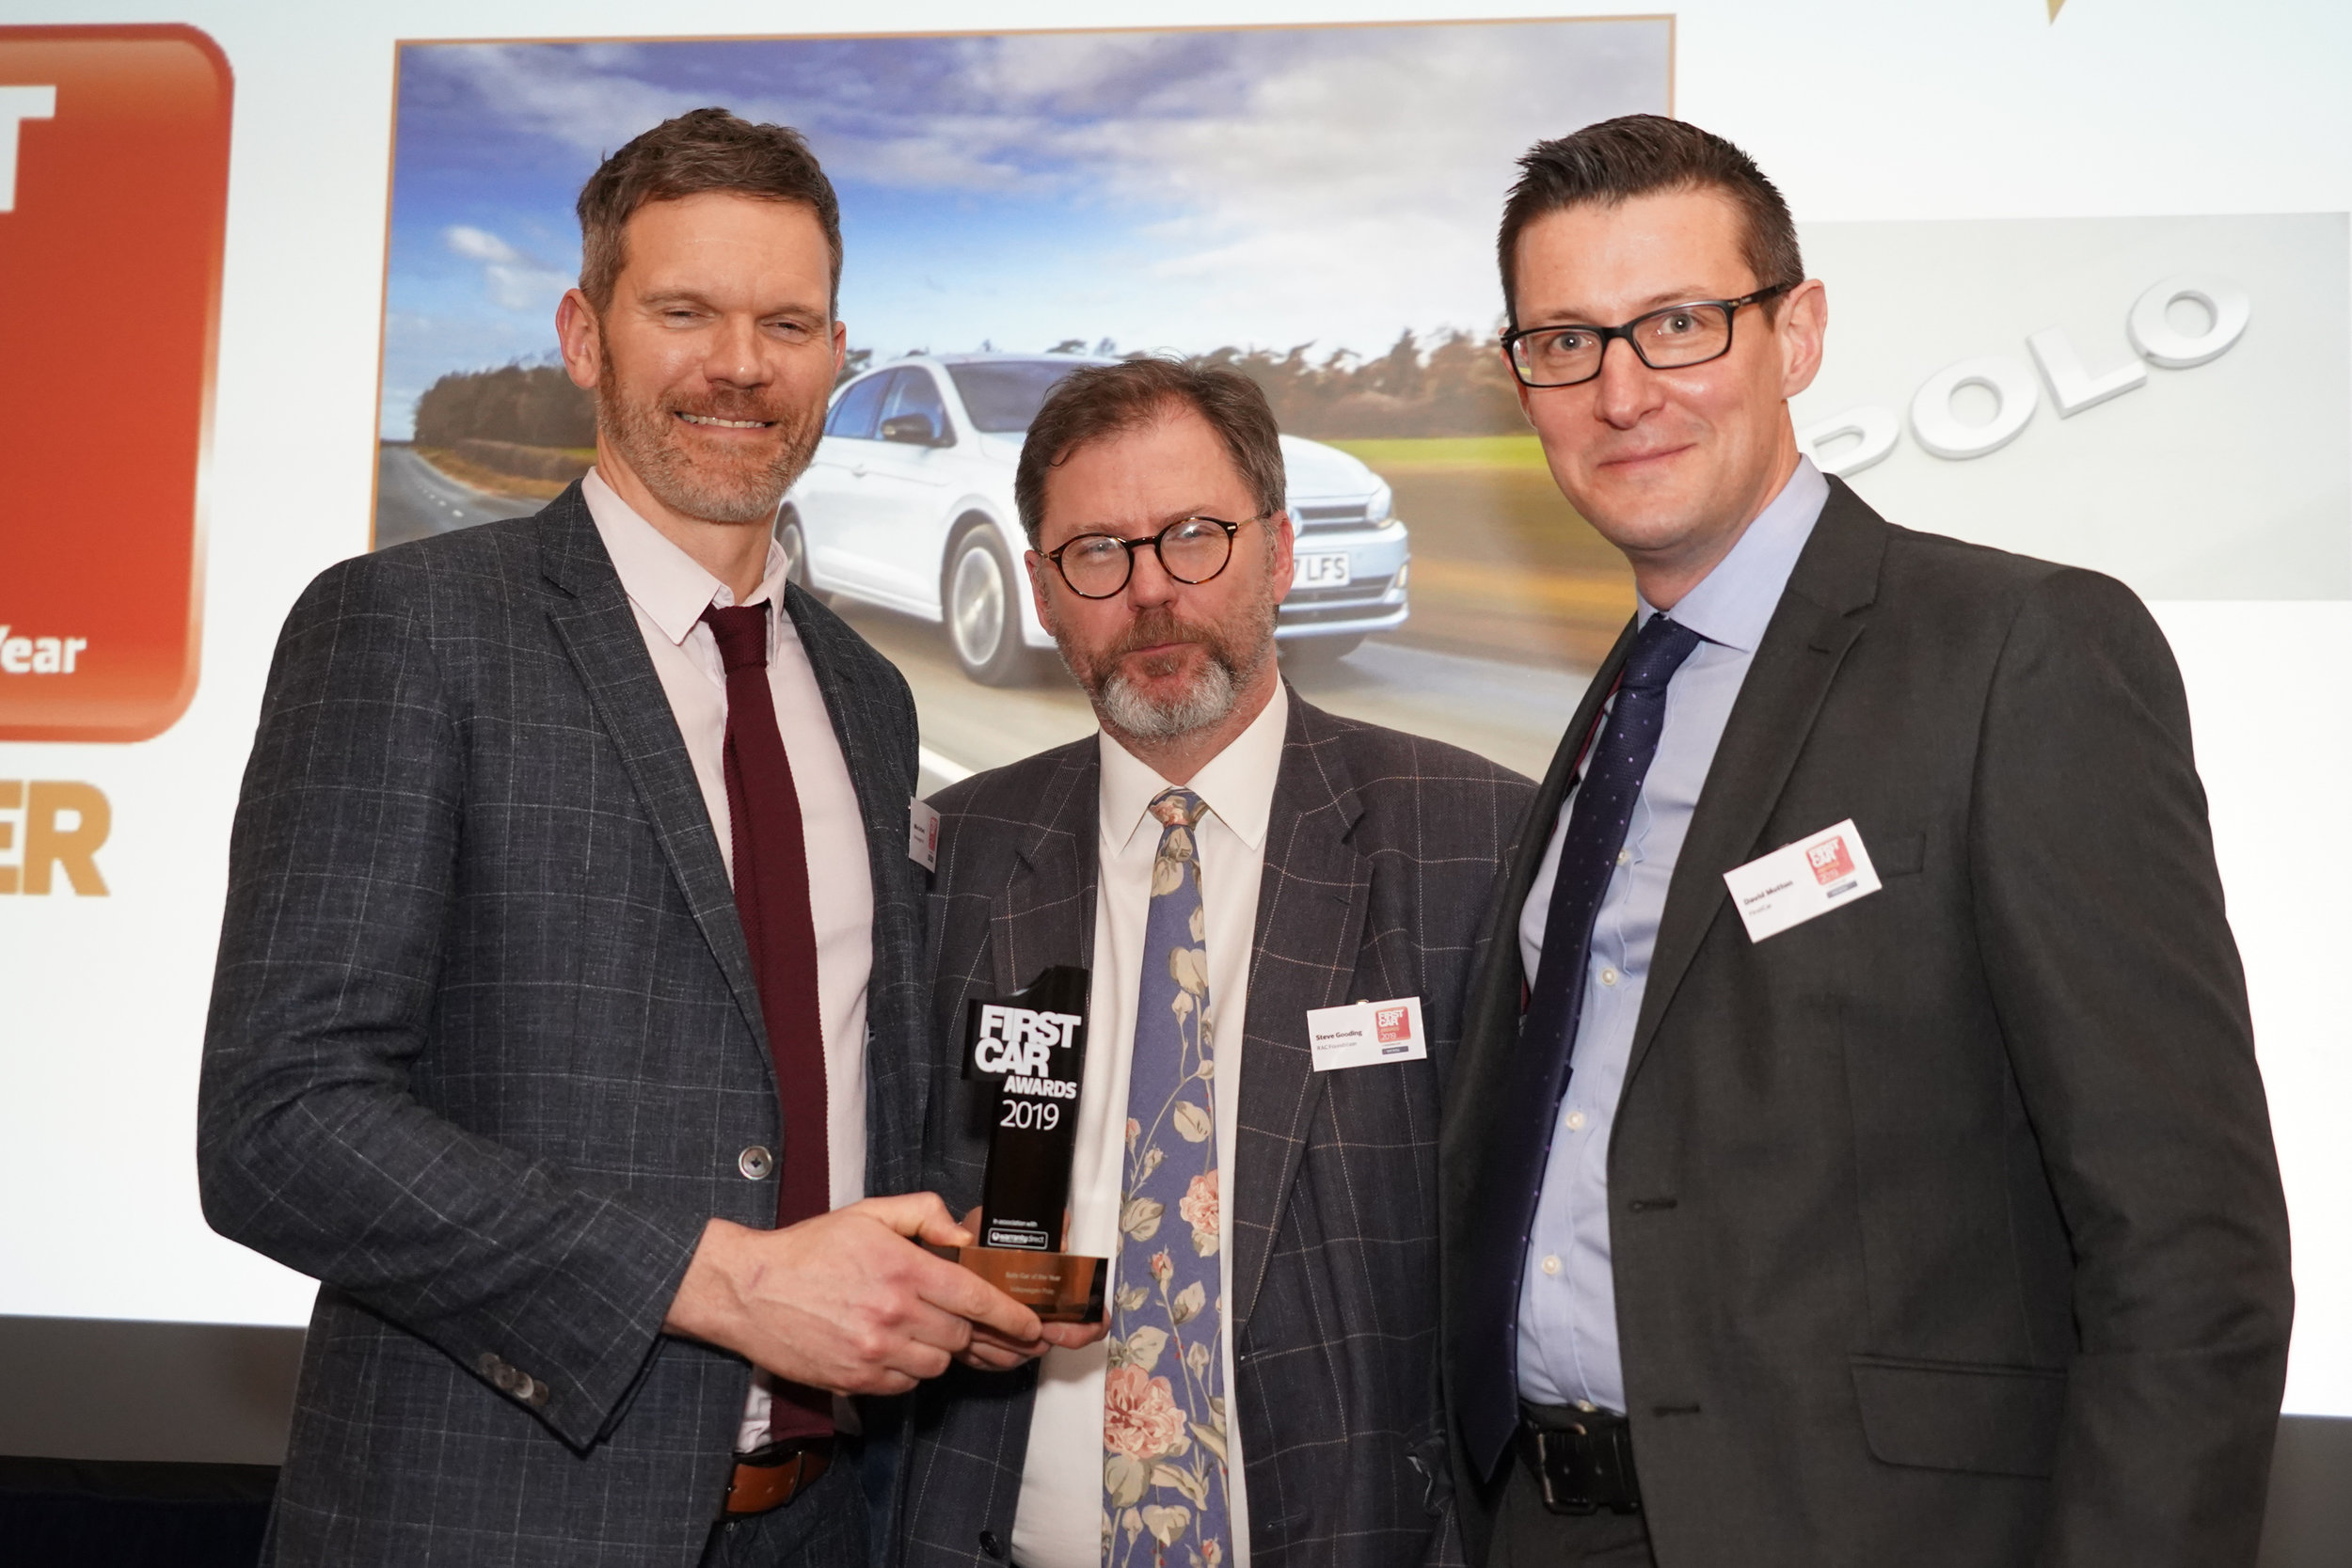 FirstCarAwards2019-223.jpg